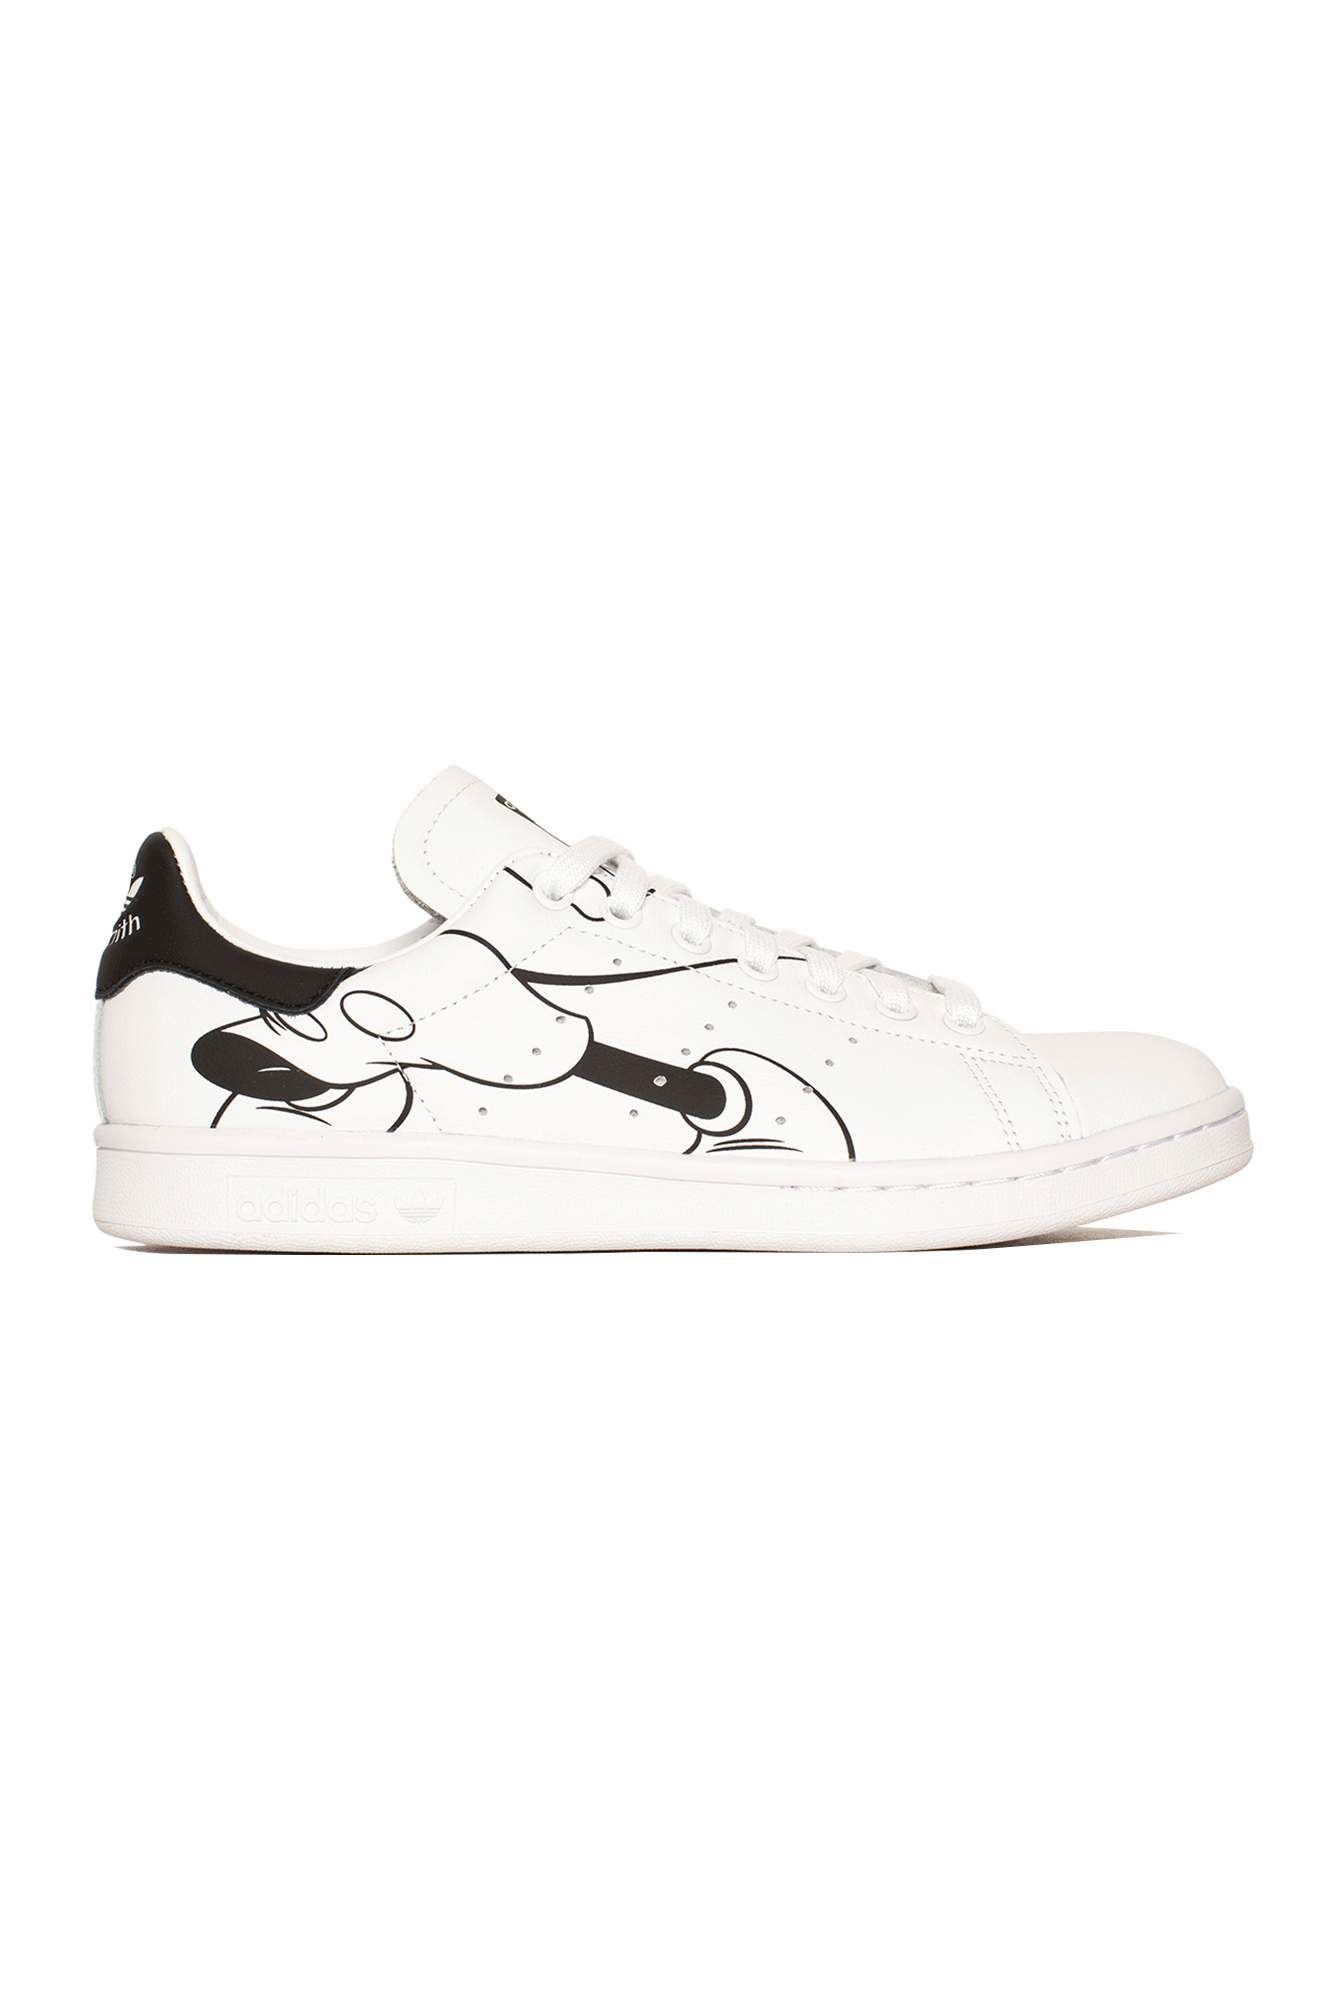 Adidas Originals Sneakers Stan Smith x Mickey Mouse White FW2895#000#WHT#7,5 - One Block Down